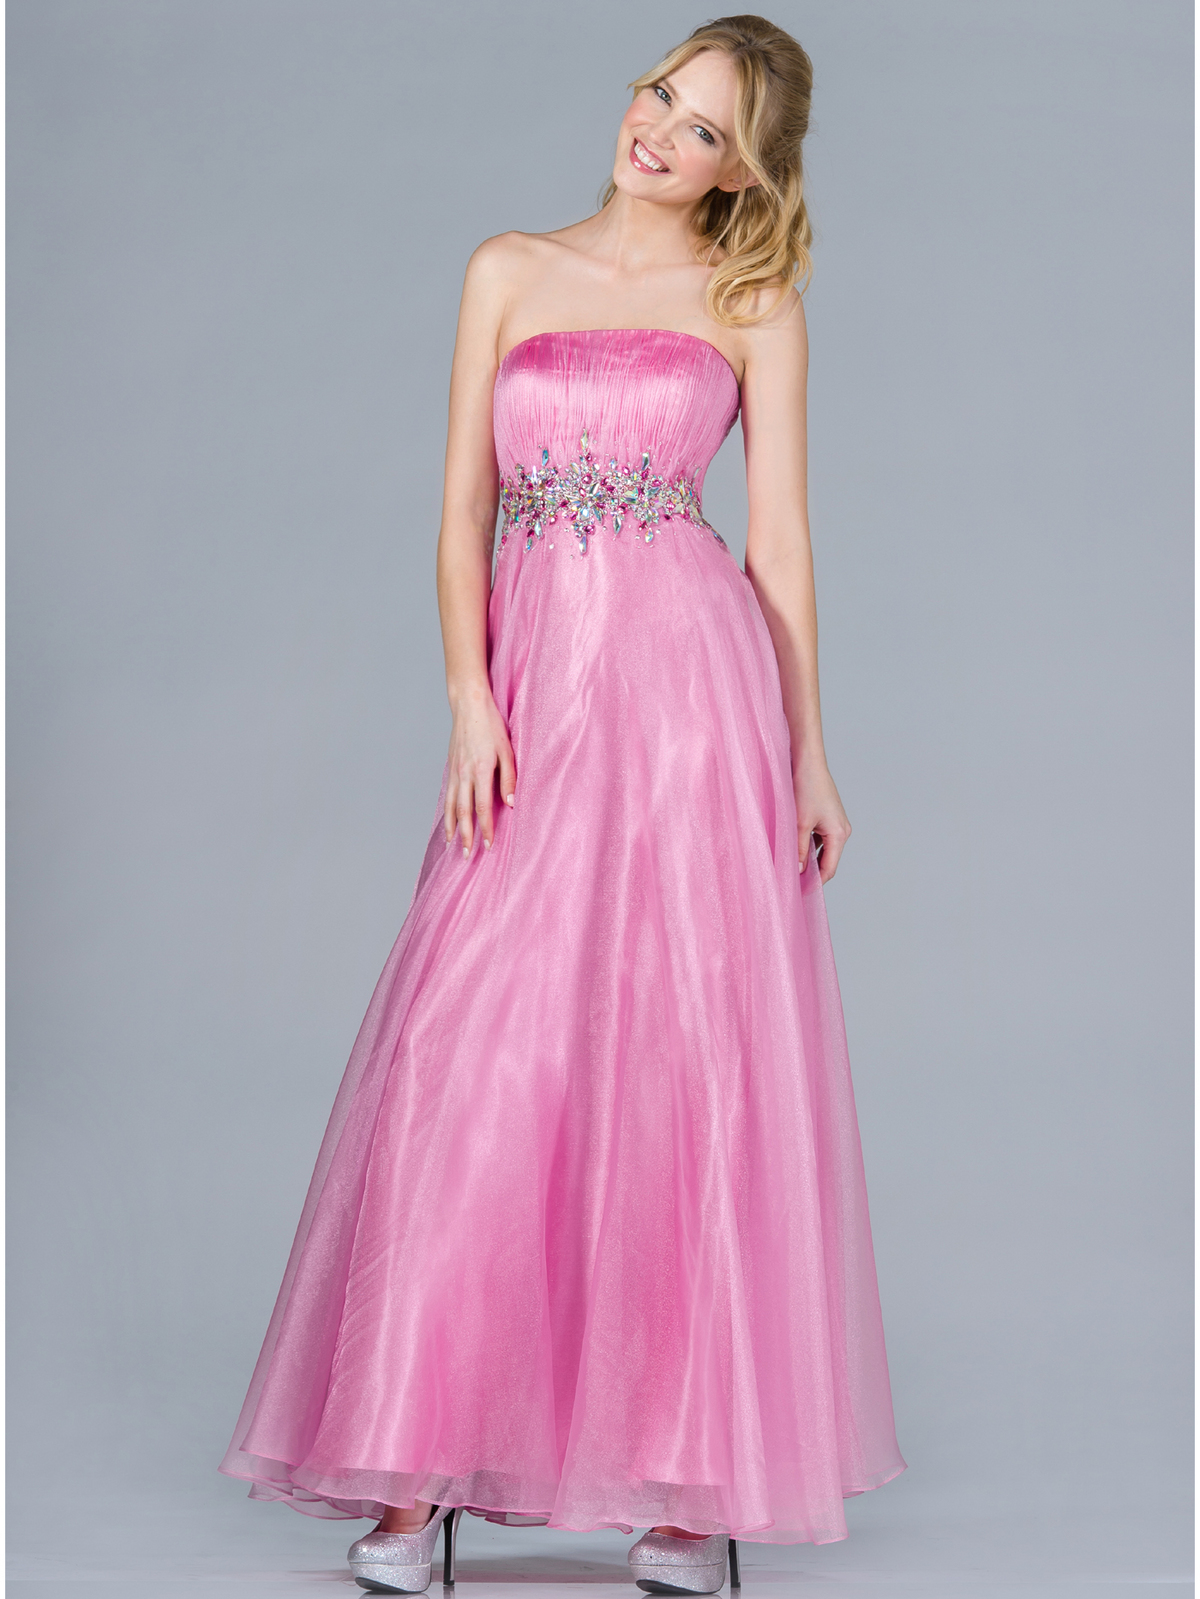 Magnificent Downtown Prom Dresses Gallery - Wedding Dress - googeb.com